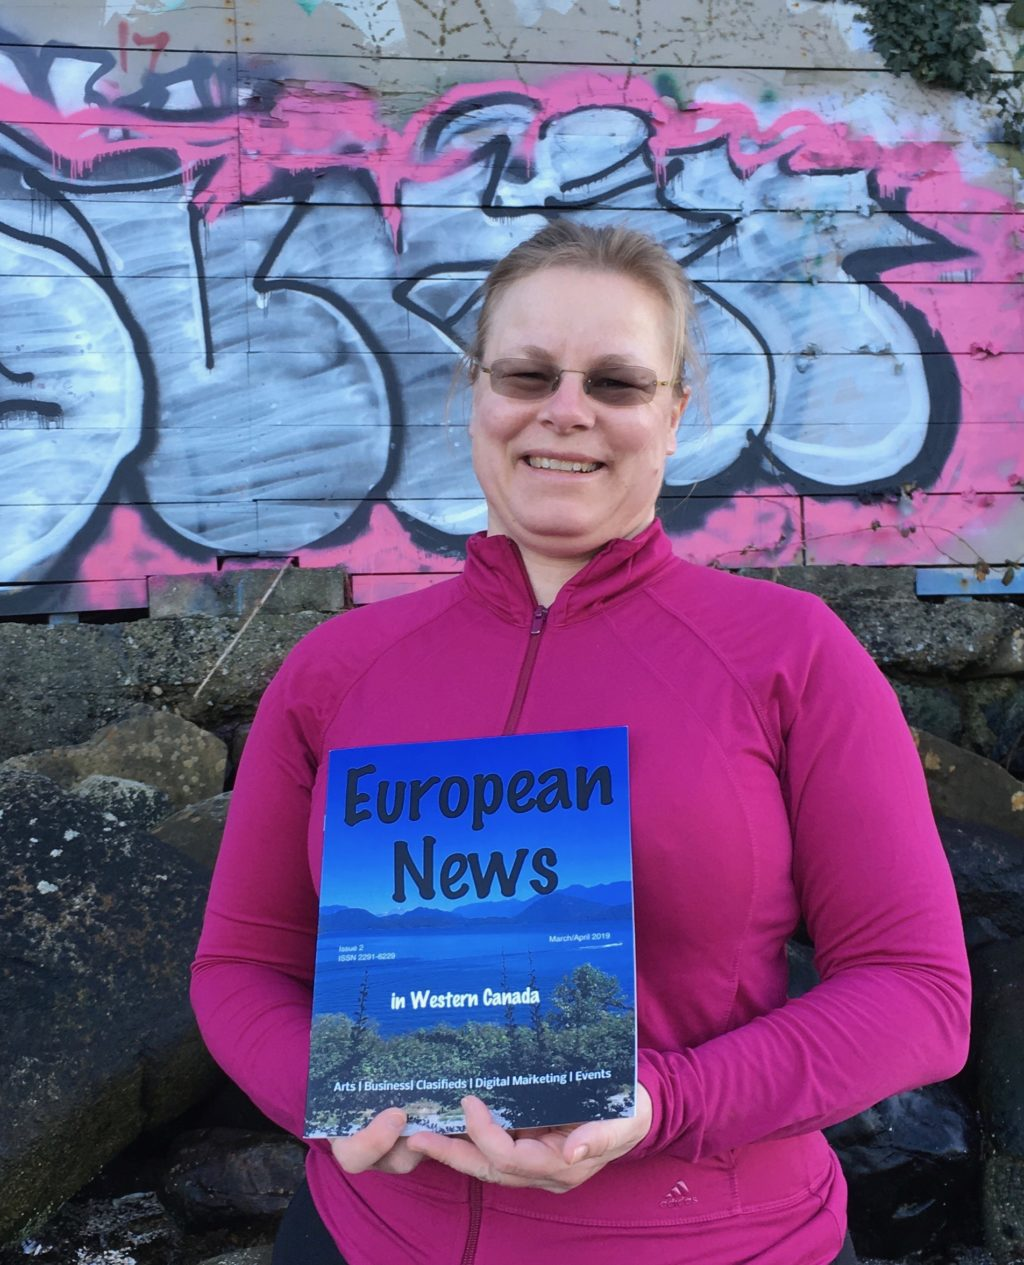 Elke holding European News